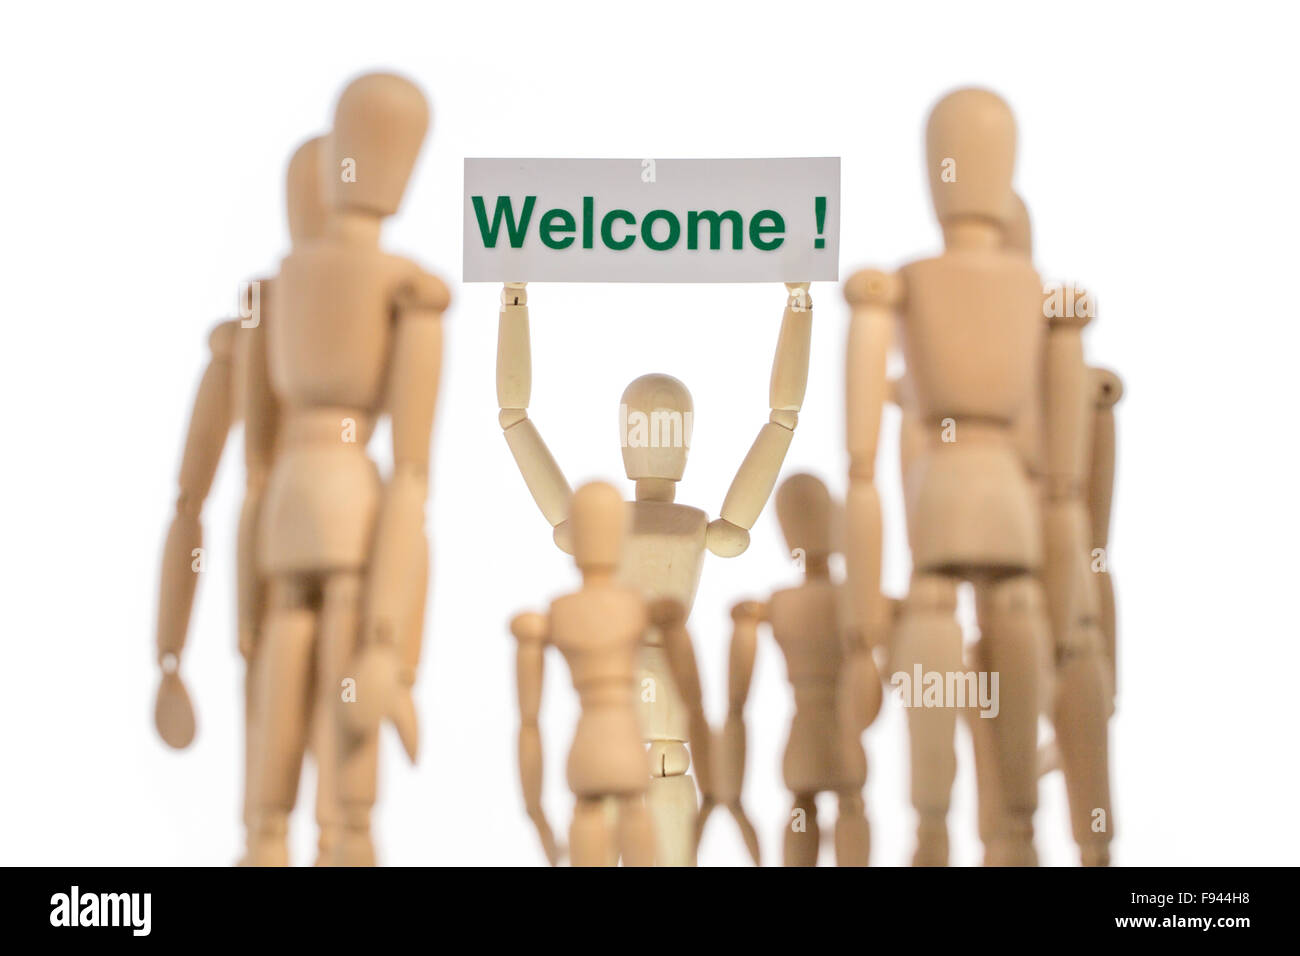 Warm welcome group of people with kids and adults staged with puppets on white background - Stock Image